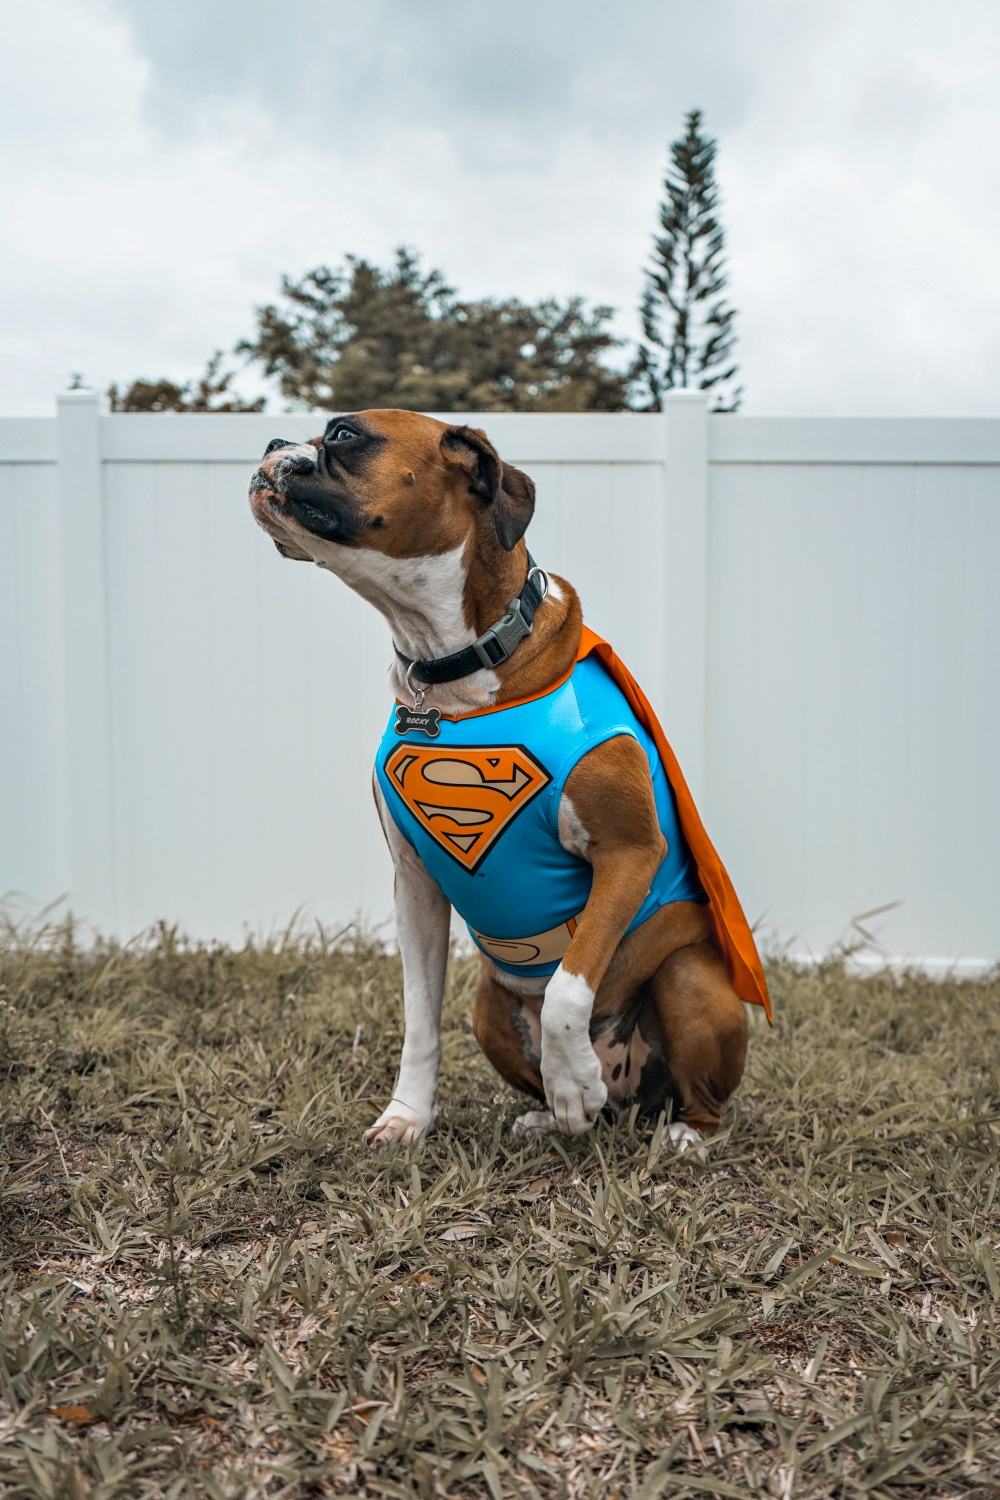 Nearly Half Of All Dog Parents Plan To Wear Matching Halloween Costumes With Their Dog, Survey Finds